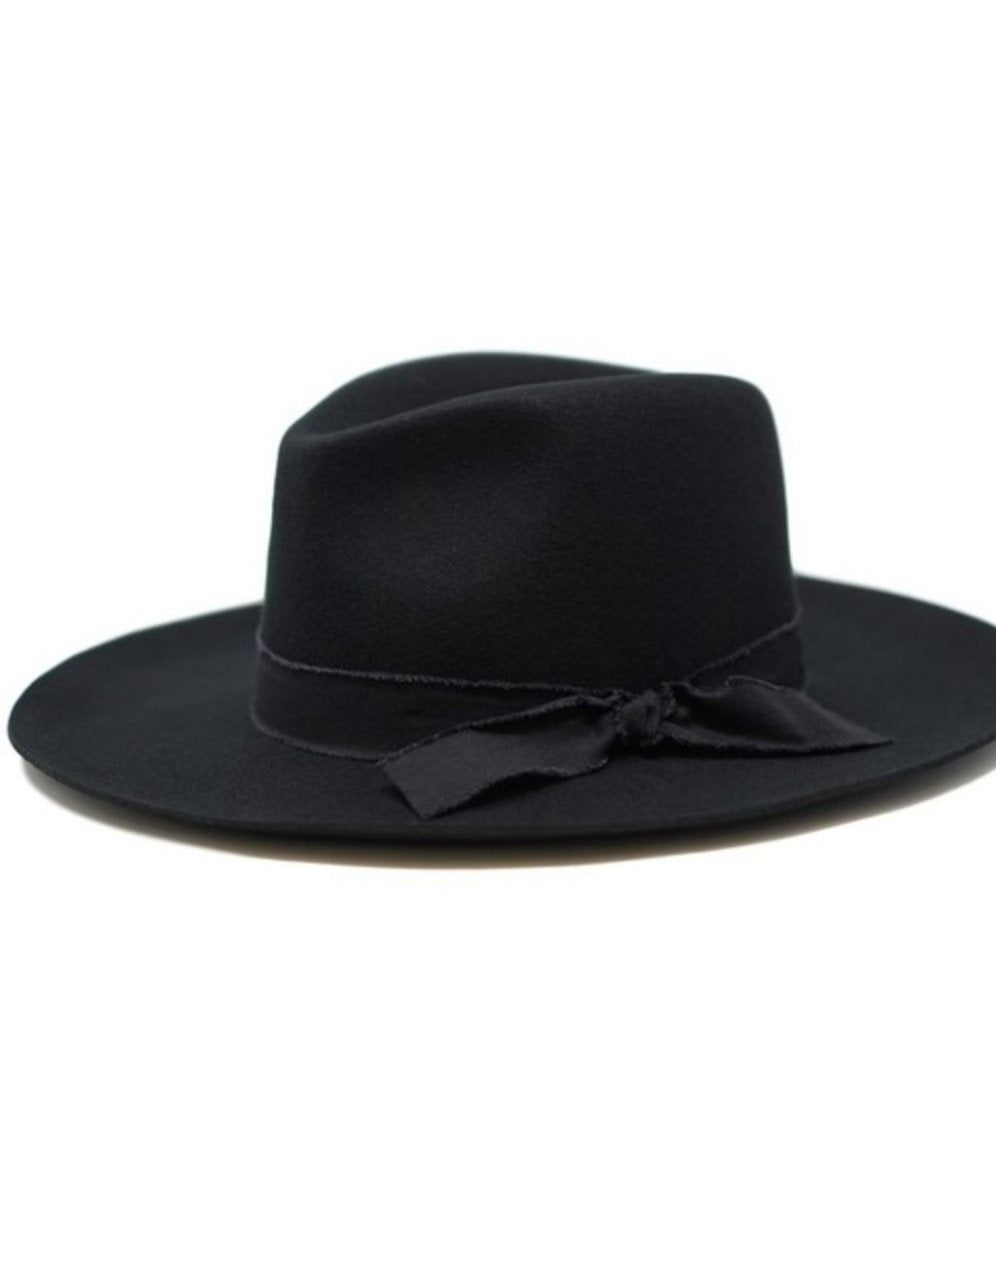 Jacqueline Wool Panama Hat-Black